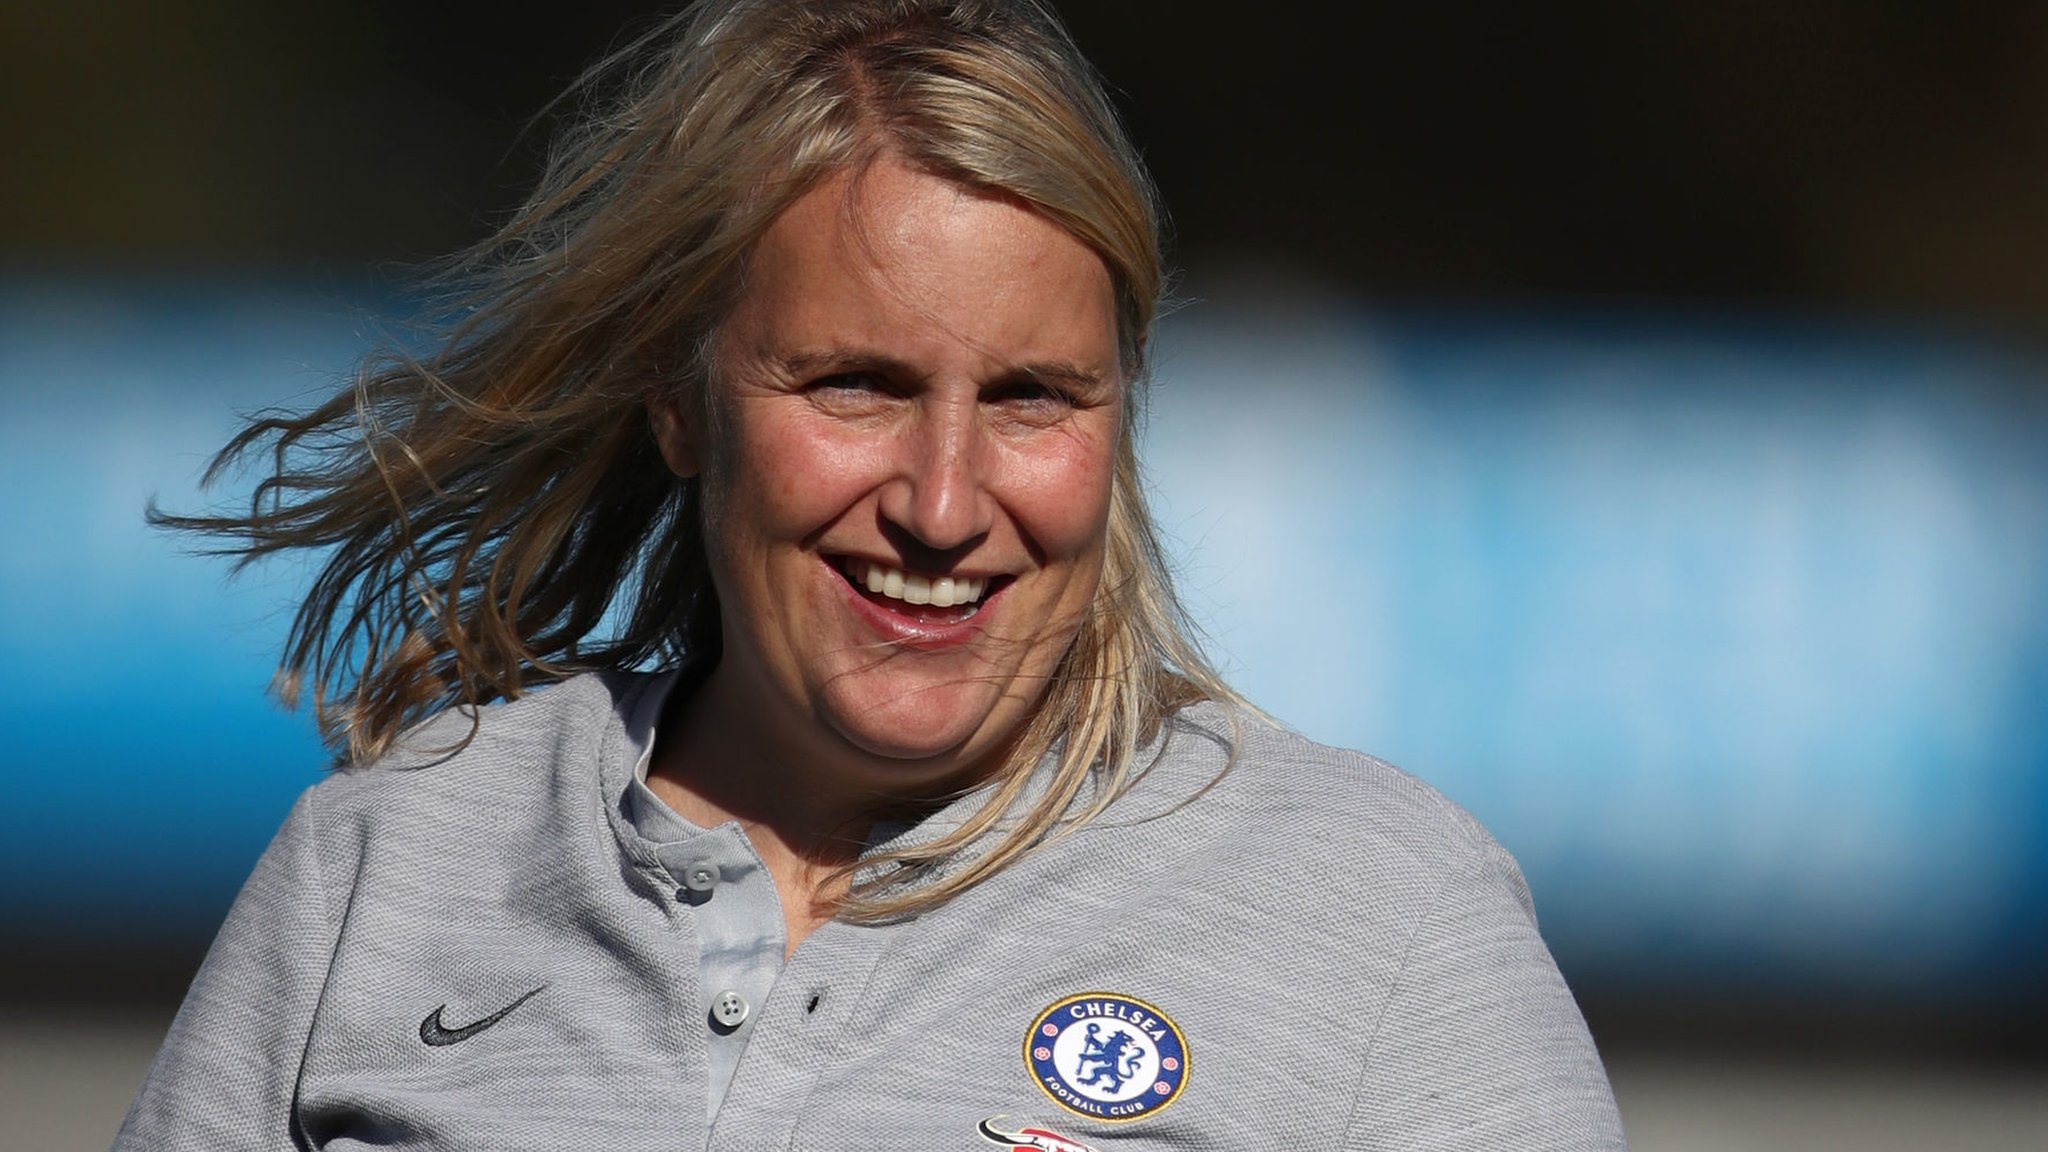 I've got a baby's bum to change when I go home - Hayes' 'maternal side' inspires Chelsea win